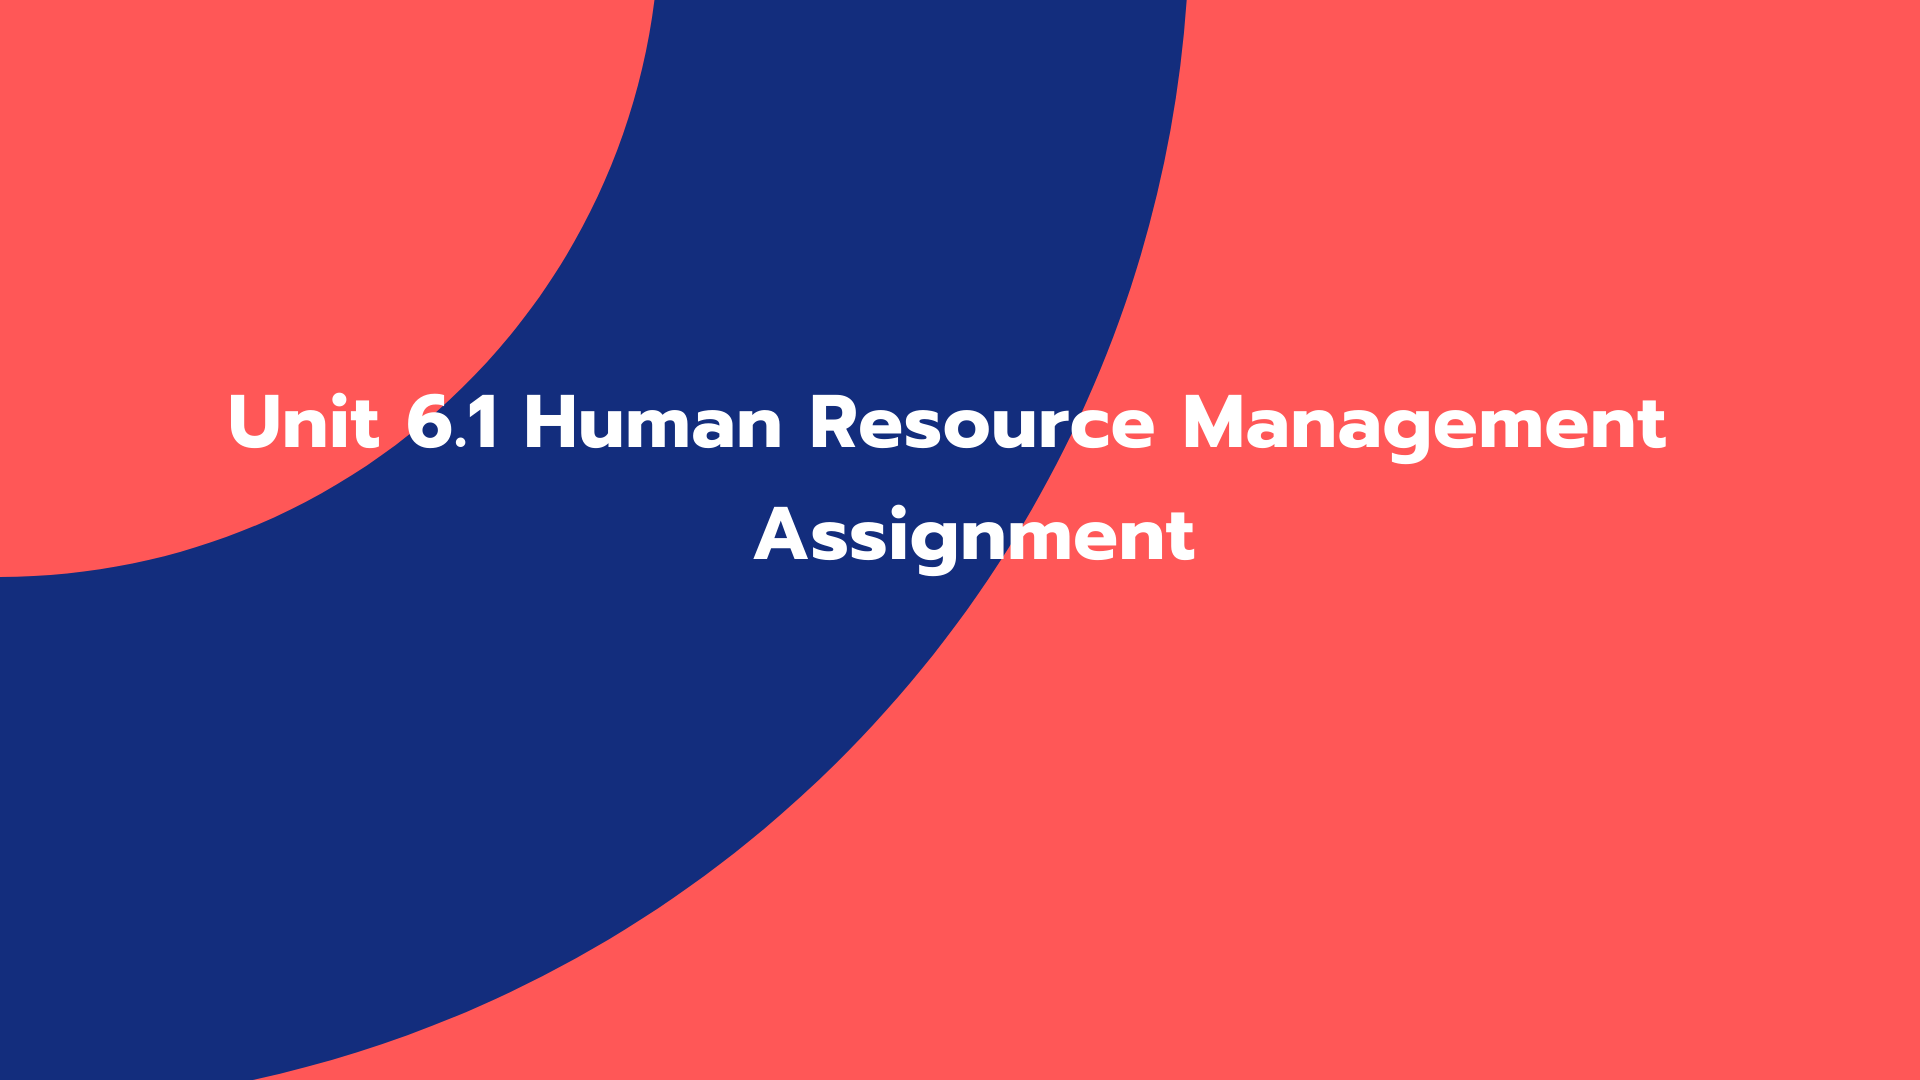 Unit 6.1 Human Resource Management Assignment